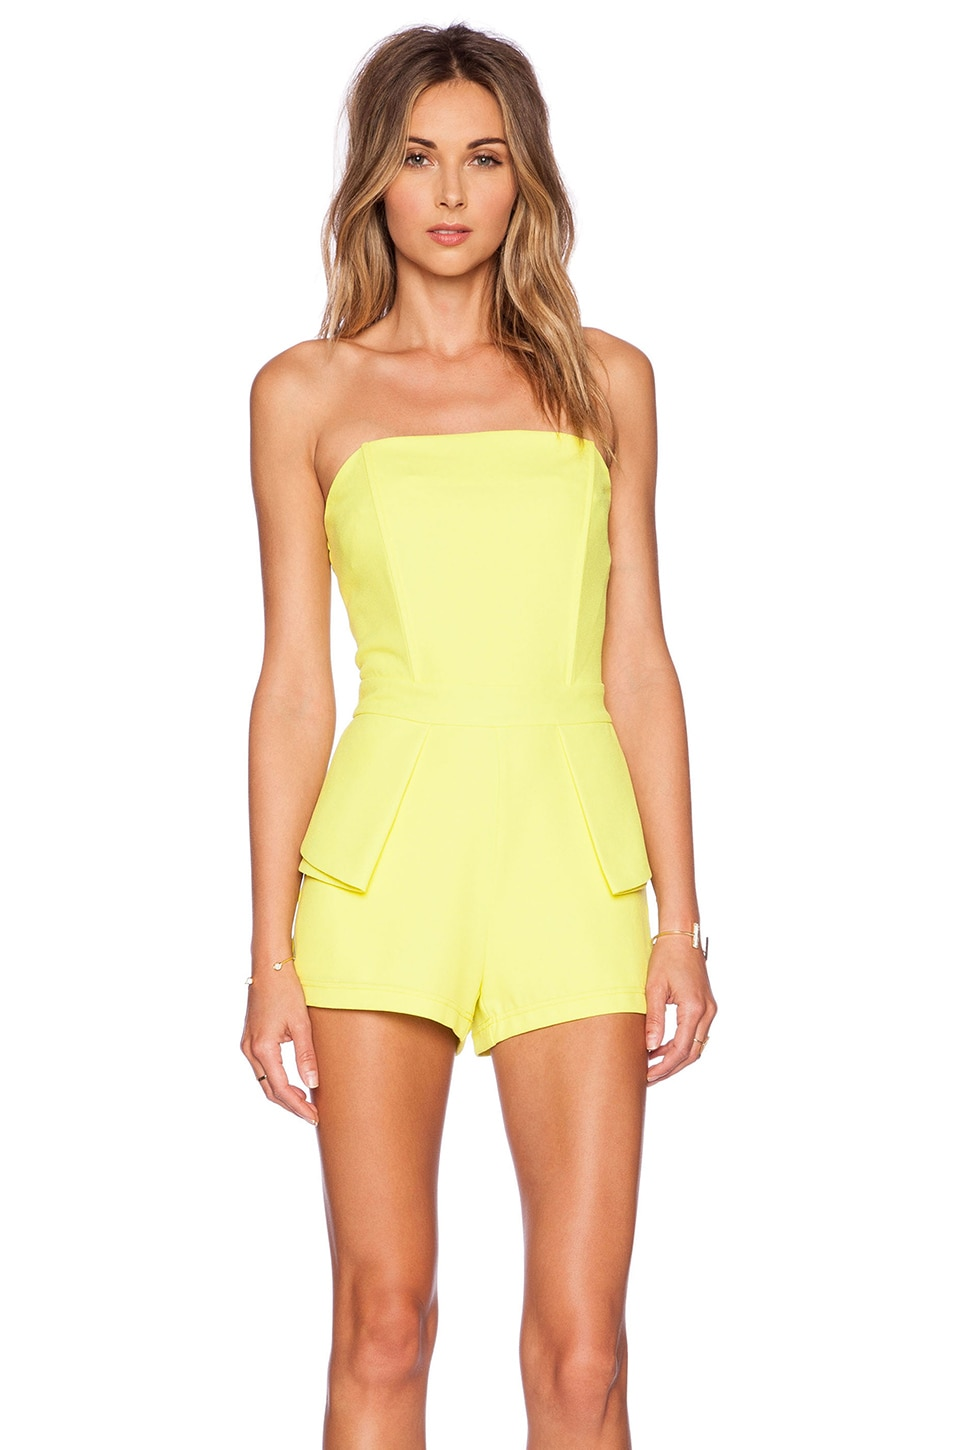 J.O.A. Romper in Lime